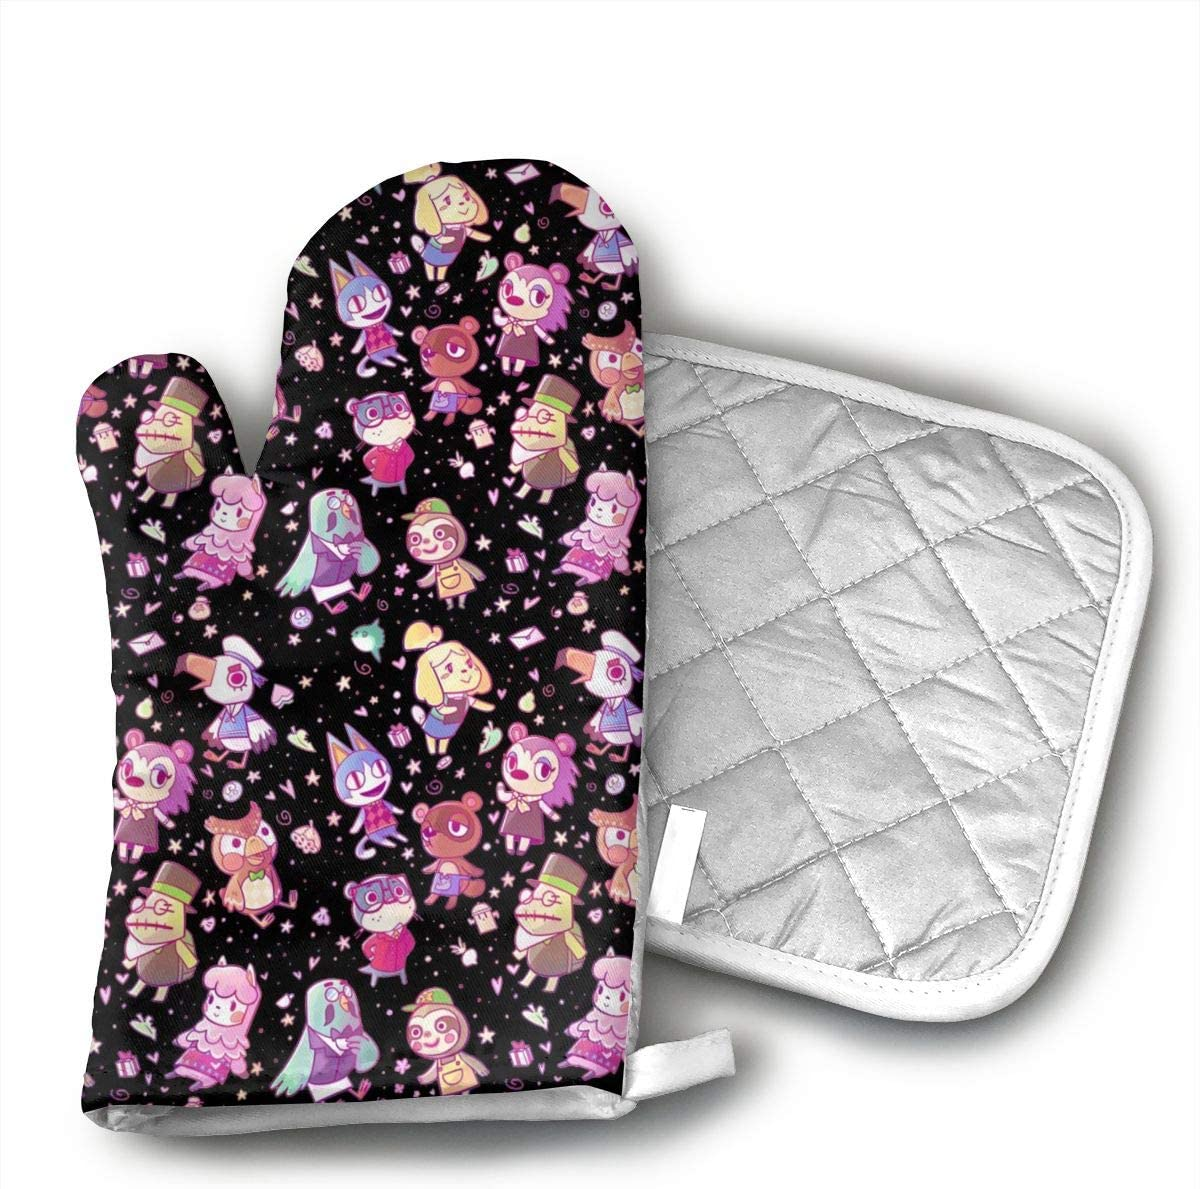 TMVFPYR Animal Crossing Oven Mitts, Non-Slip Silicone Oven Mitts, Extra Long Kitchen Mitts, Heat Resistant to 500fahrenheit Degrees Kitchen Oven Gloves